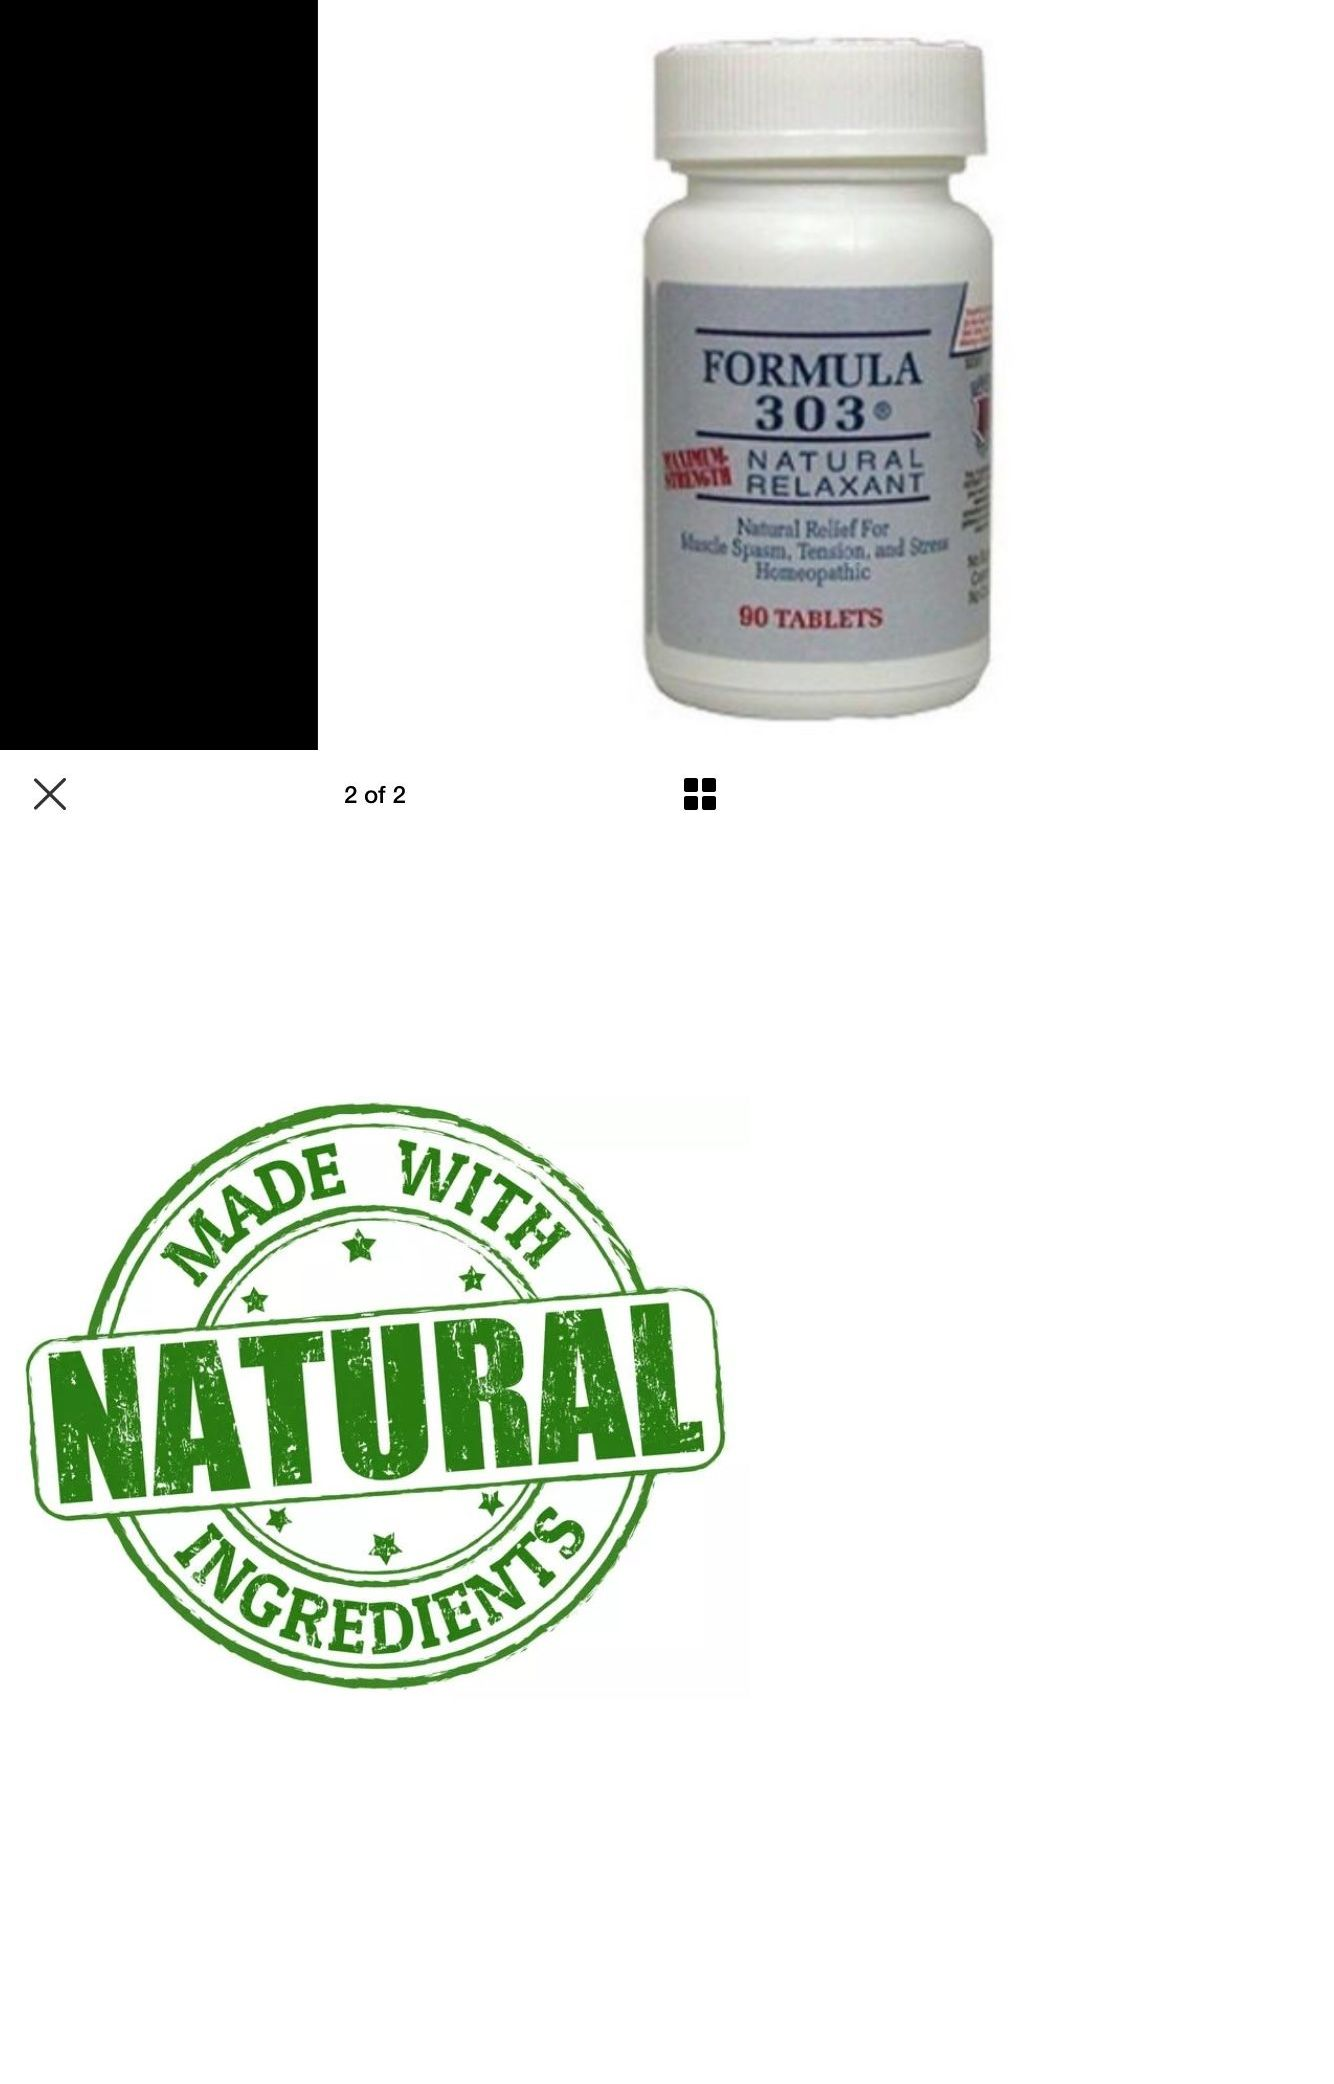 Formula 303 90 tablets bottle free shipping NEW by Dee Cee Labs